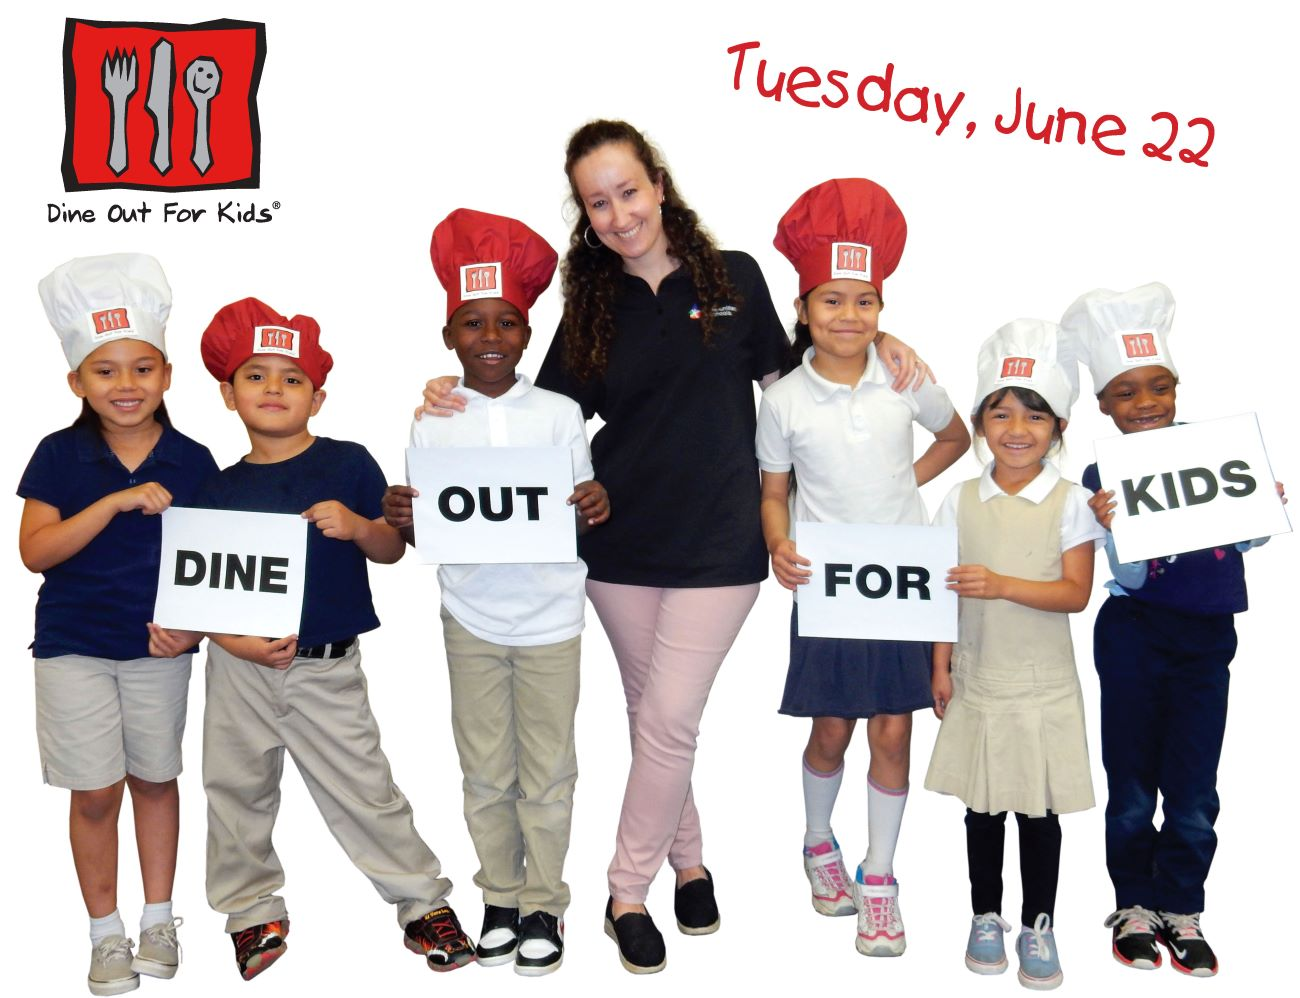 Site Coordinator and little kids in chef's hats holding Dine Out For Kids signs